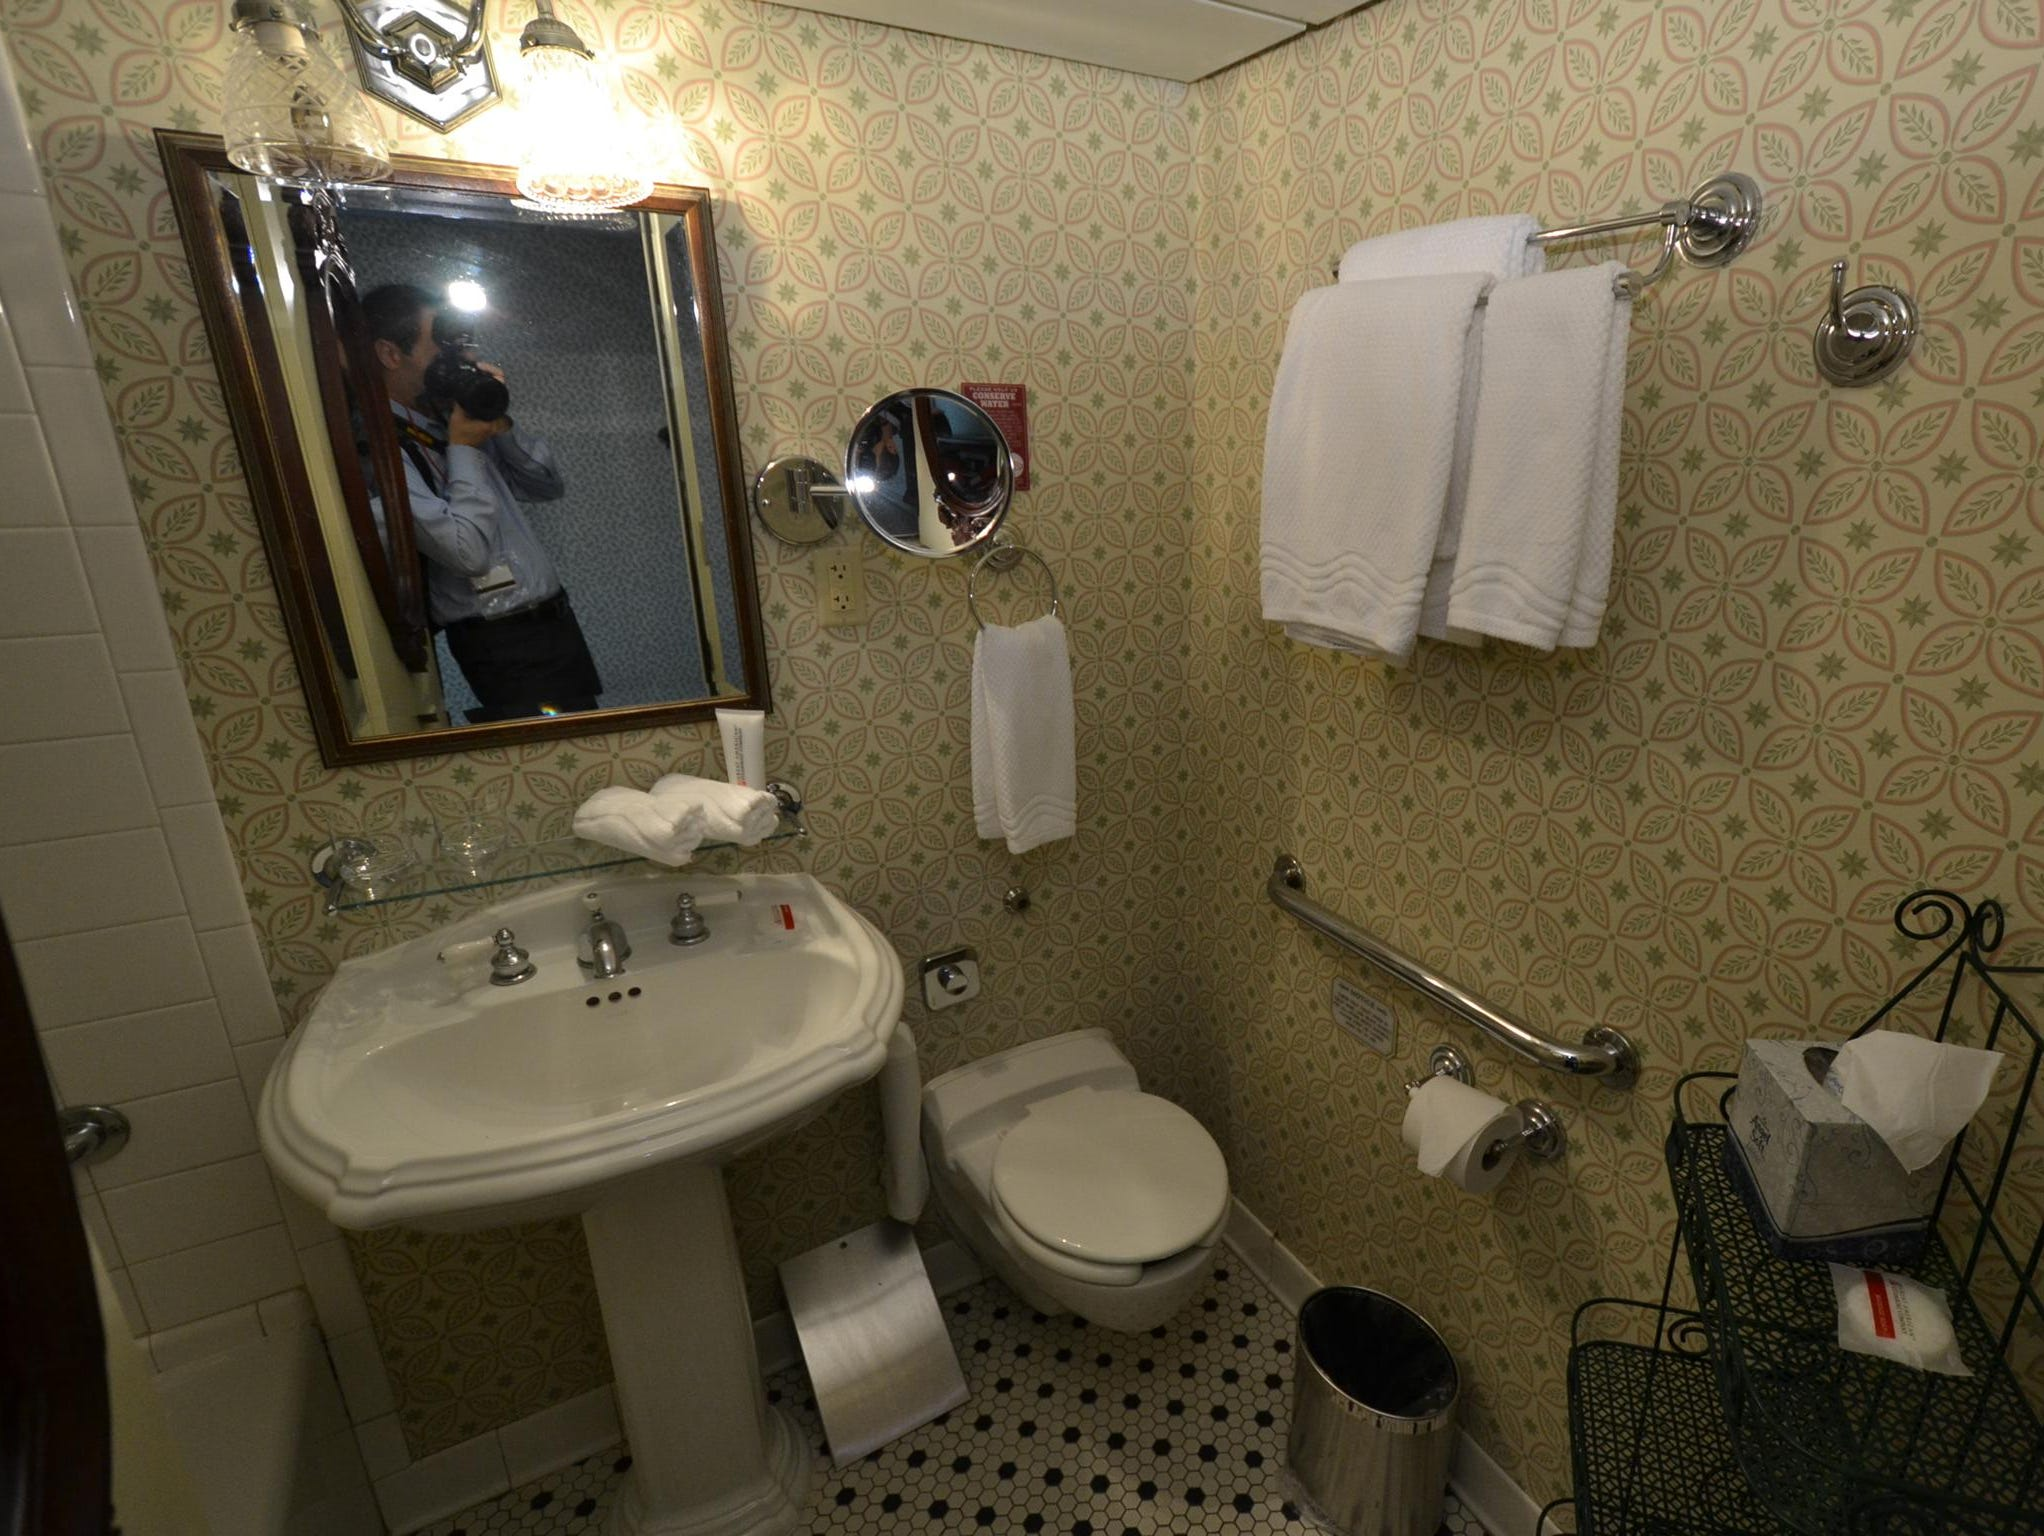 Bathrooms in the Deluxe Outside Stateroom with Veranda category boast a period look.